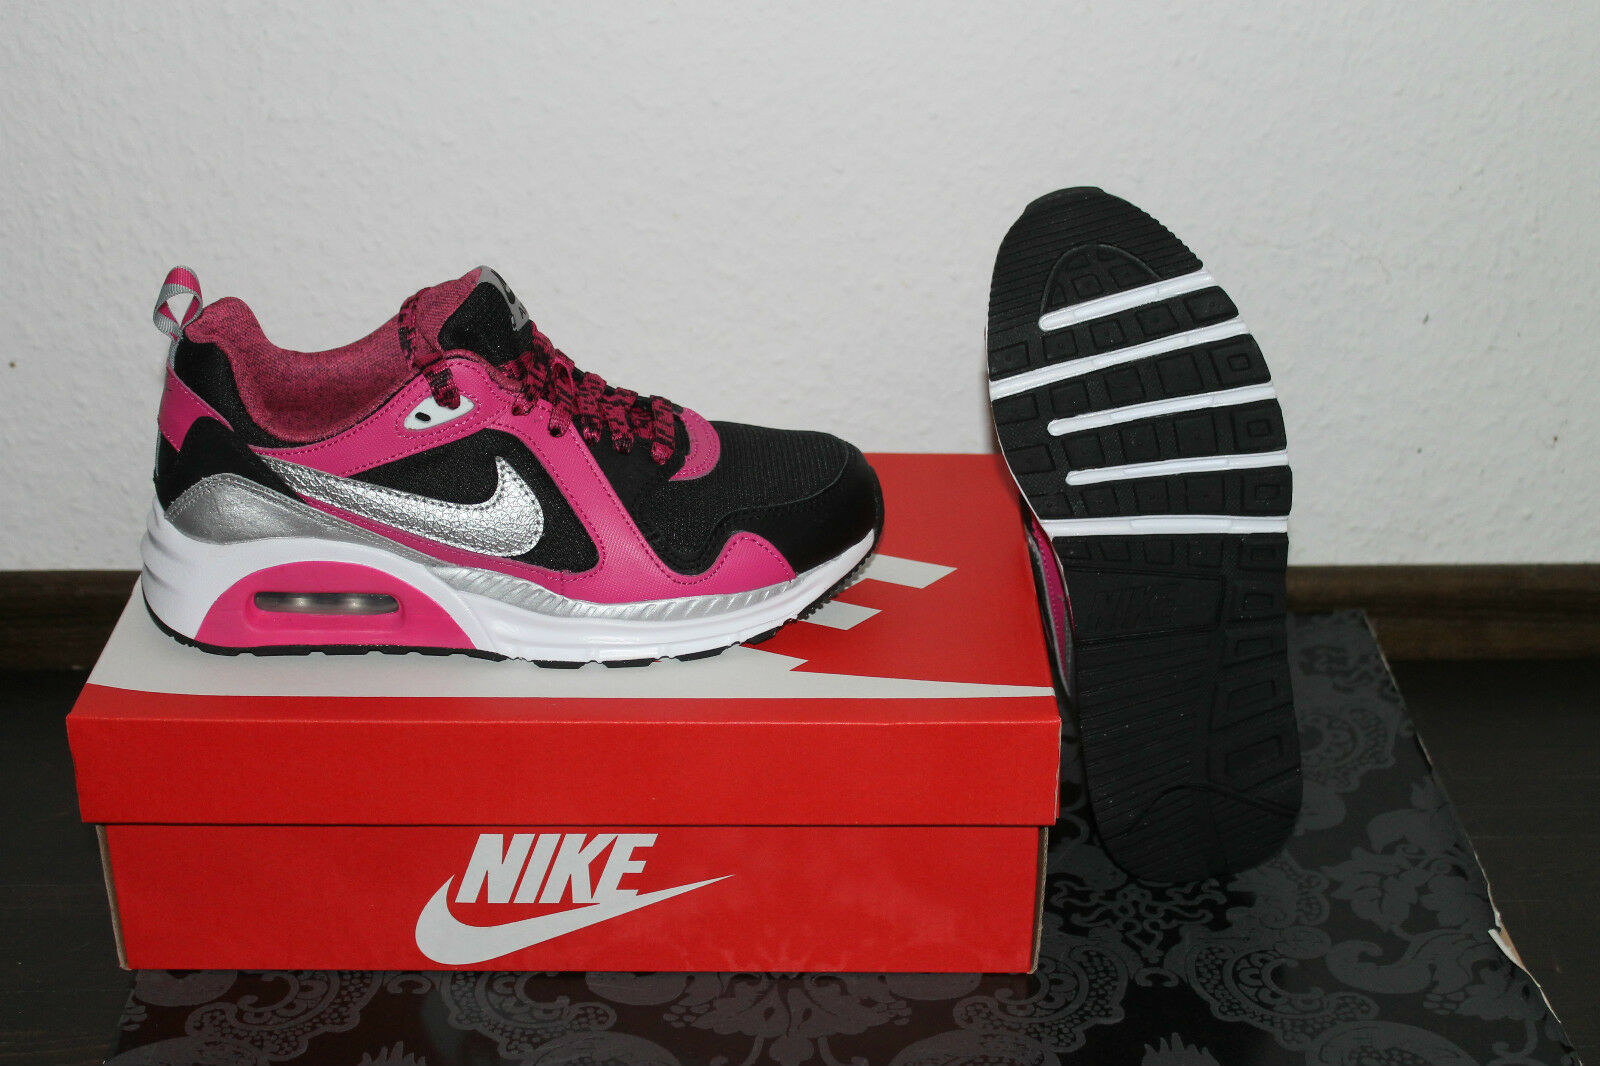 Nike Air Max rose trax Femmes running chaussures noir rose Max argent taille 36,5; 38; 38,5 1f065f